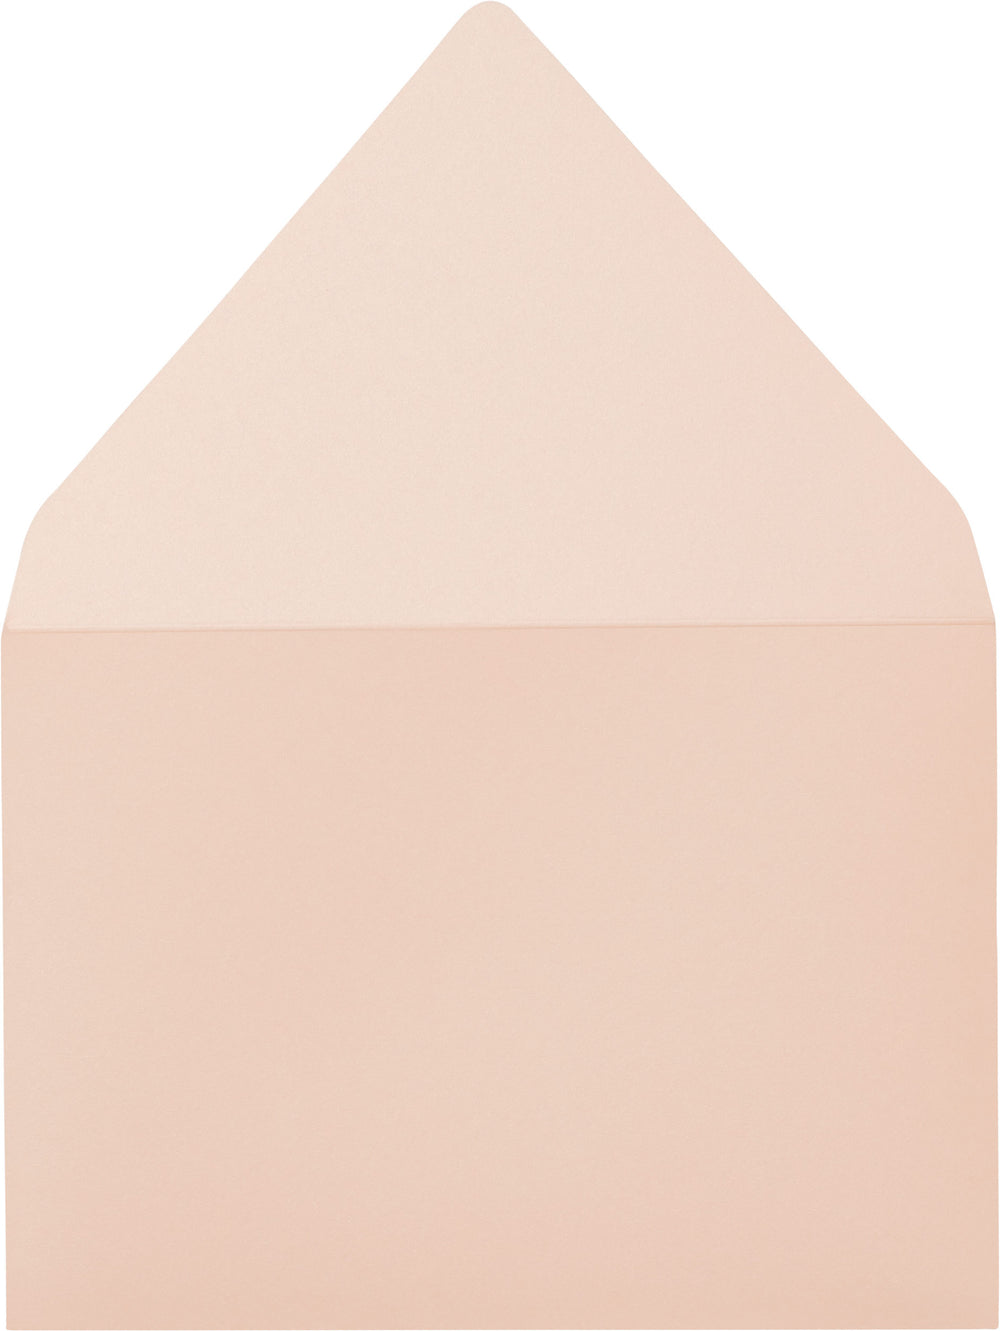 Peach (Coral) Metallic - A-7 Euro Flap Card Enclosure